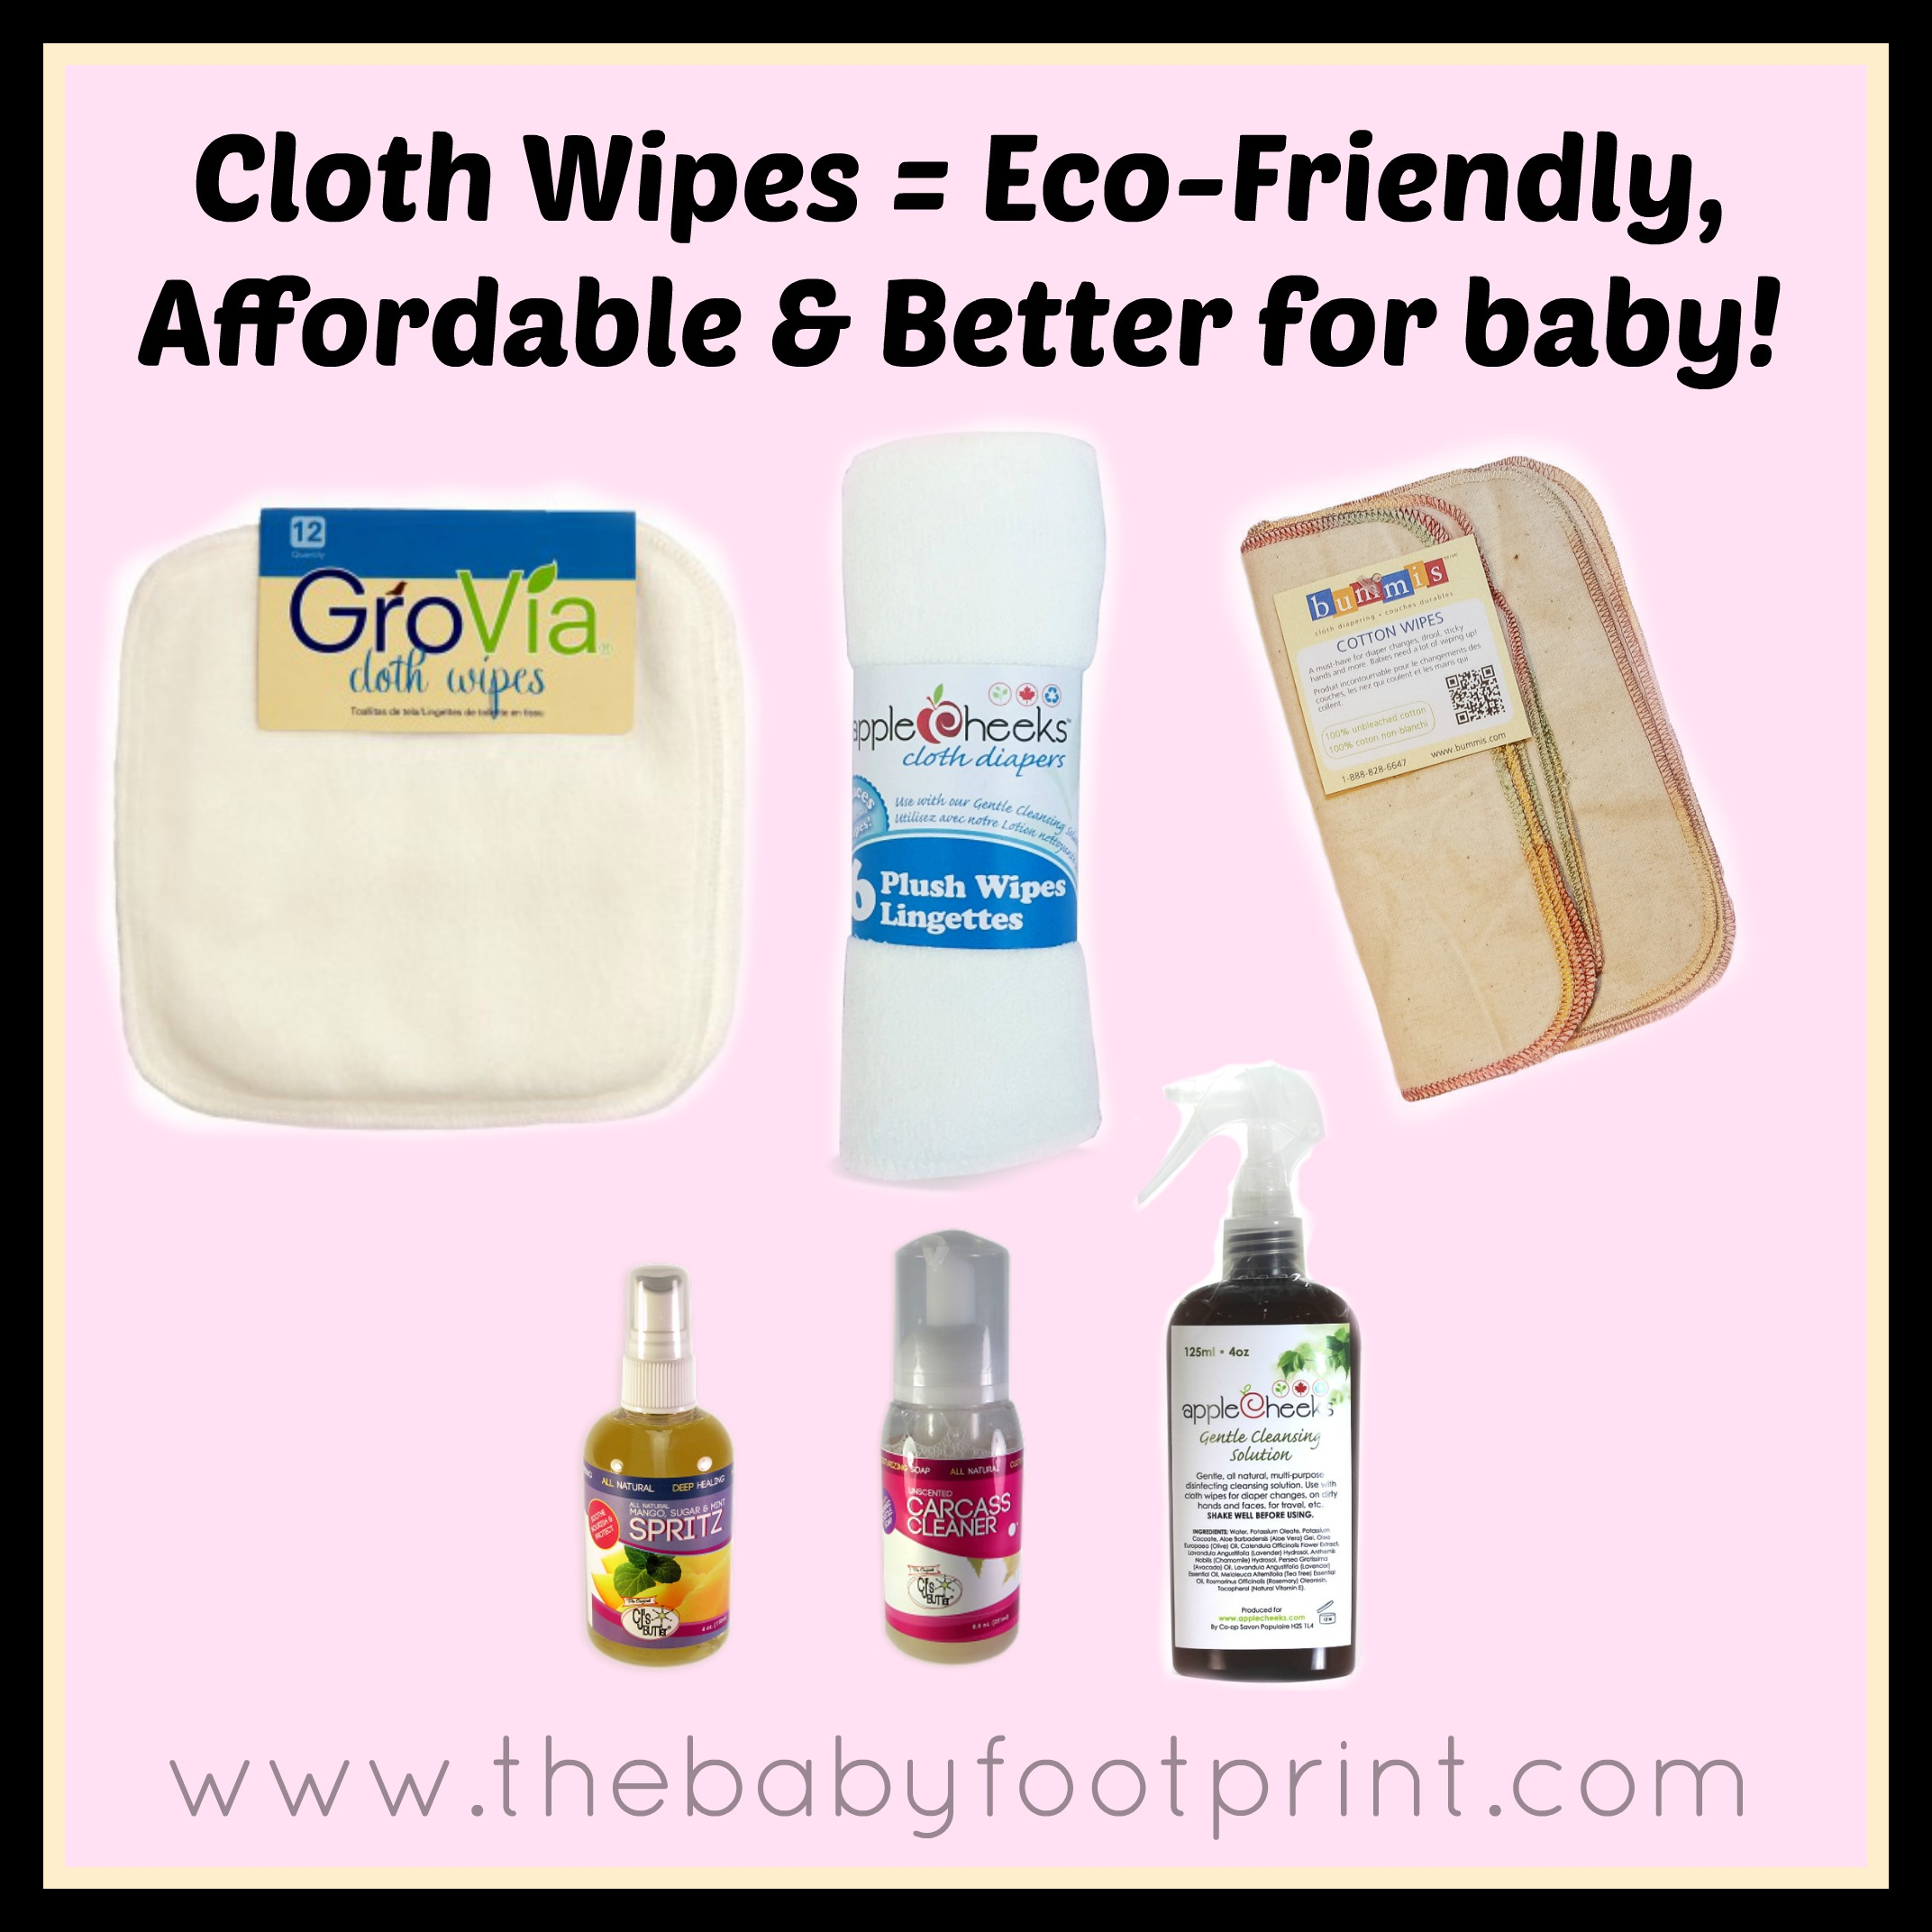 Cloth Wipes, Its Easy & Better!